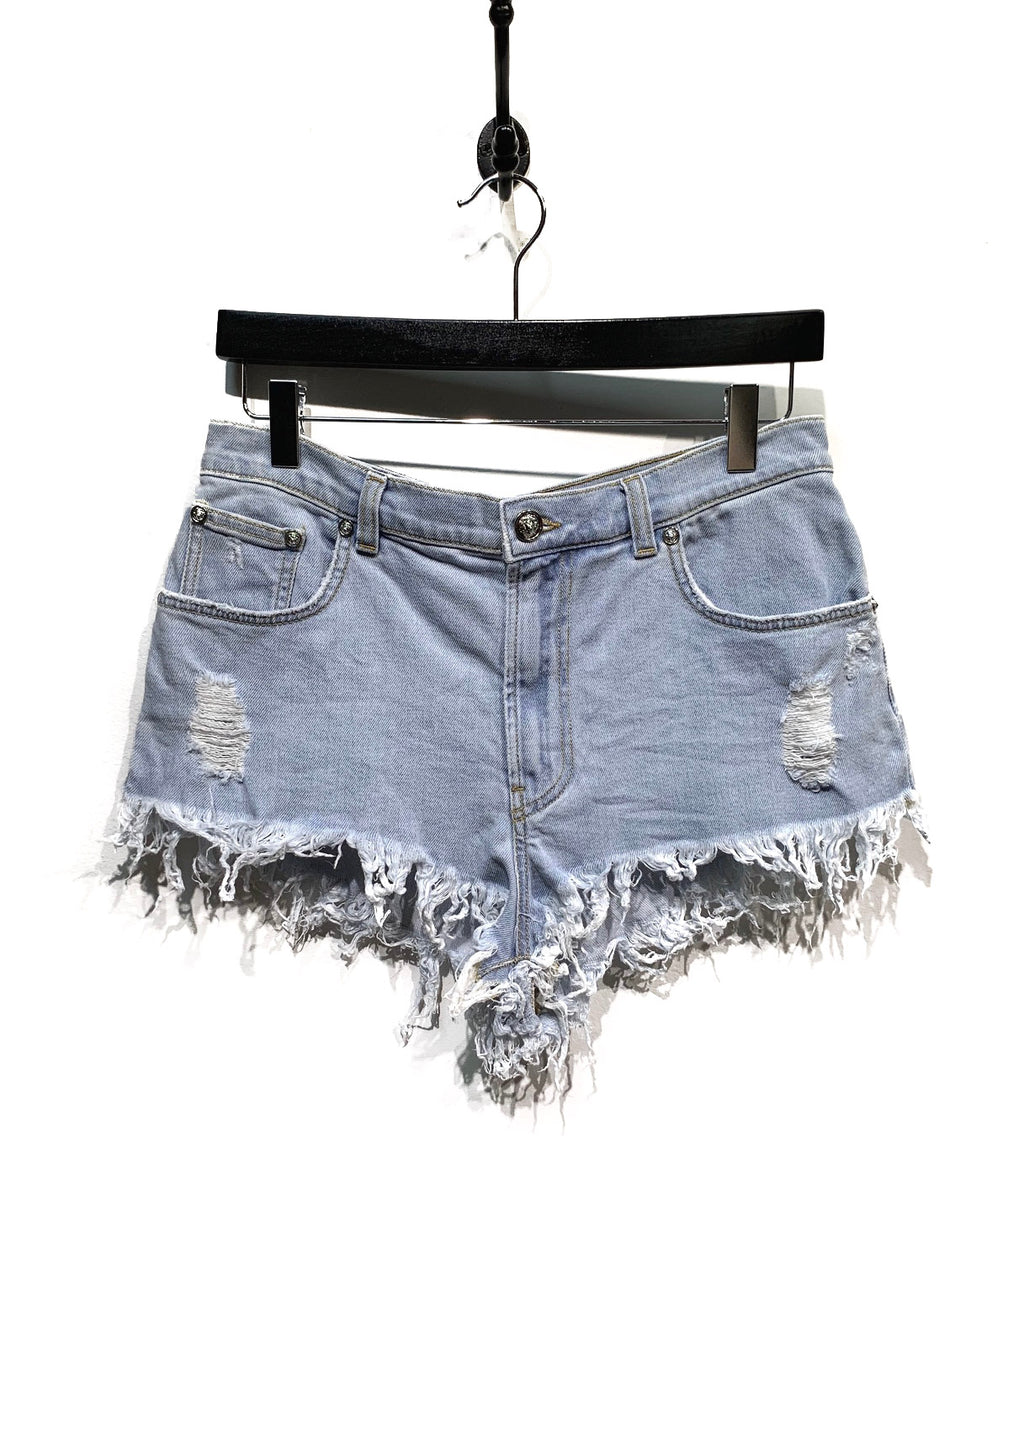 Versus Light Blue Denim Mini Shorts